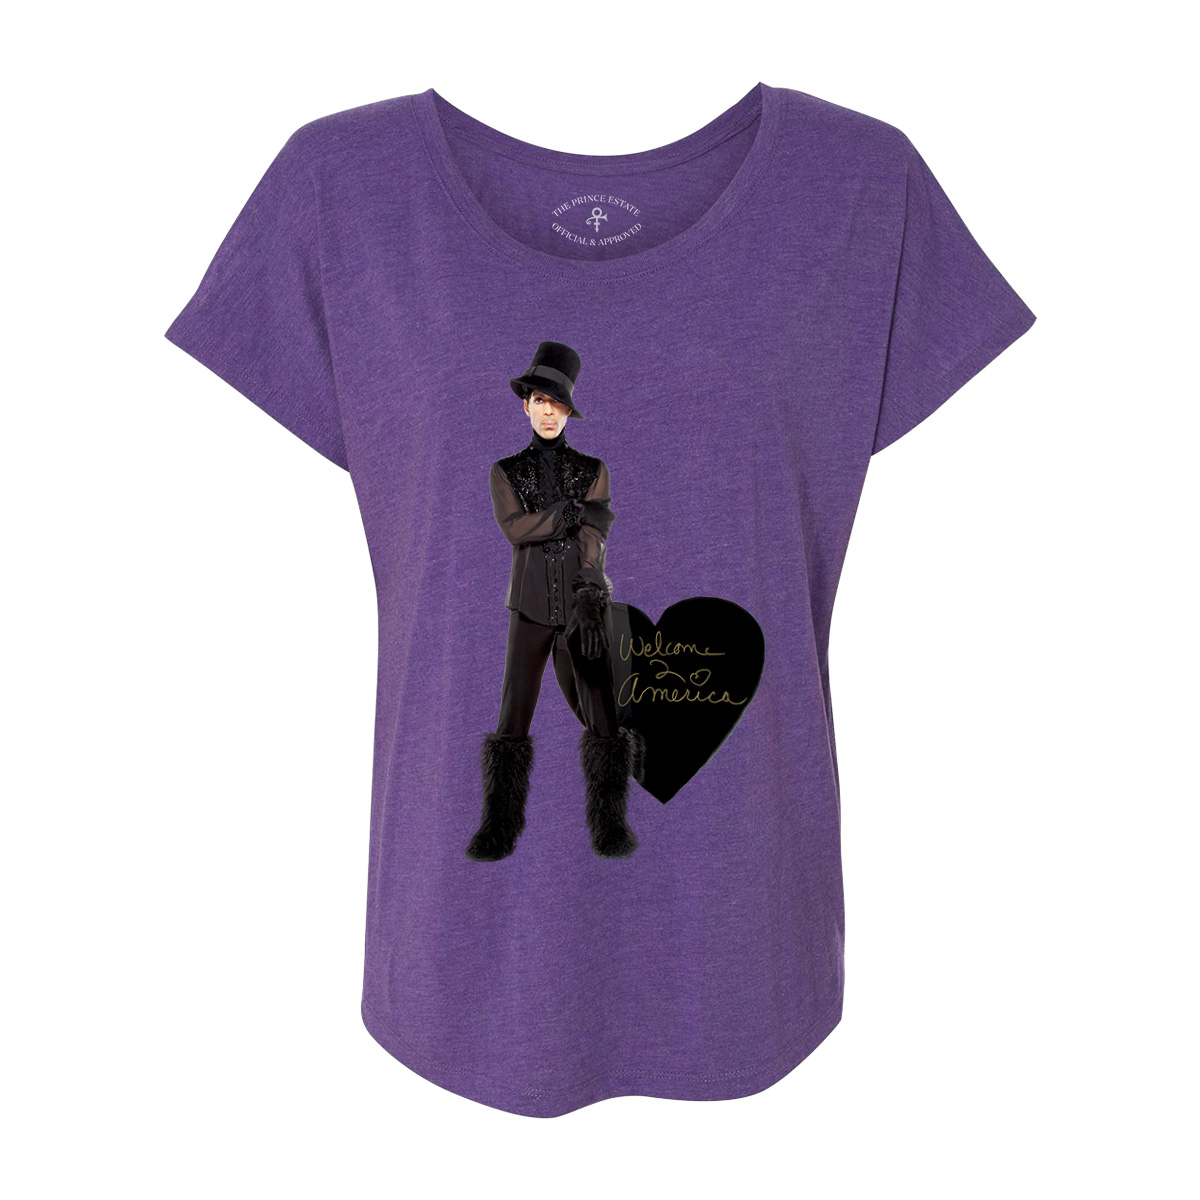 Welcome 2 America Heart Scoop Neck Woman's T-Shirt